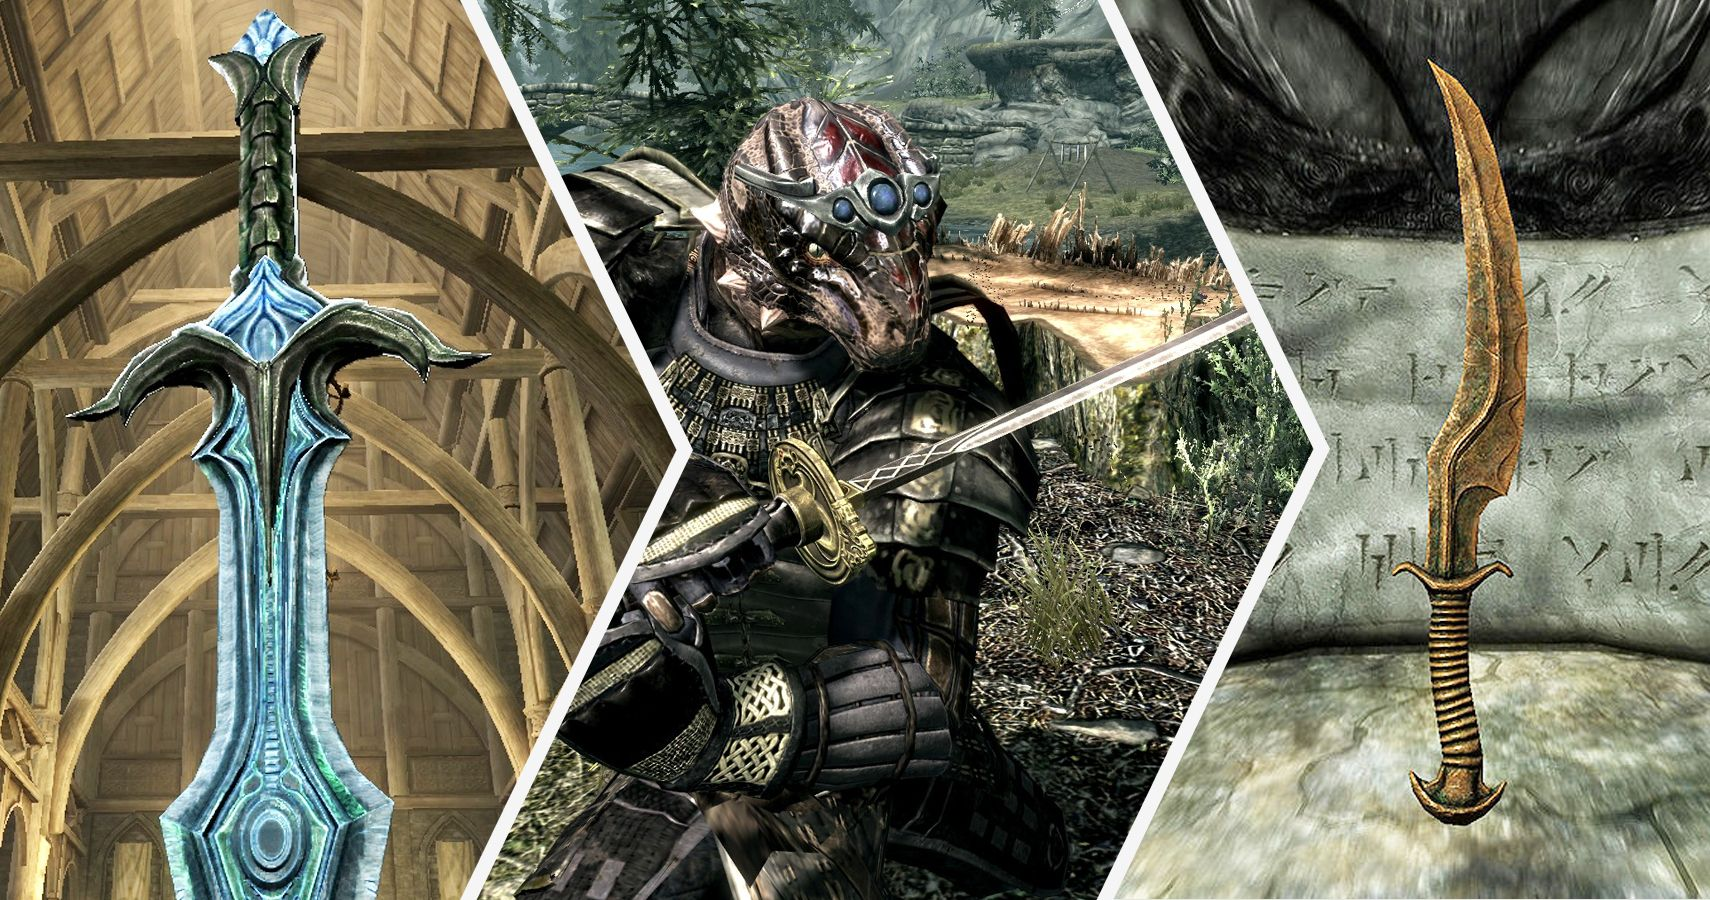 Skyrim 10 Worthless Weapons Everyone Uses And 15 That Are Way Better